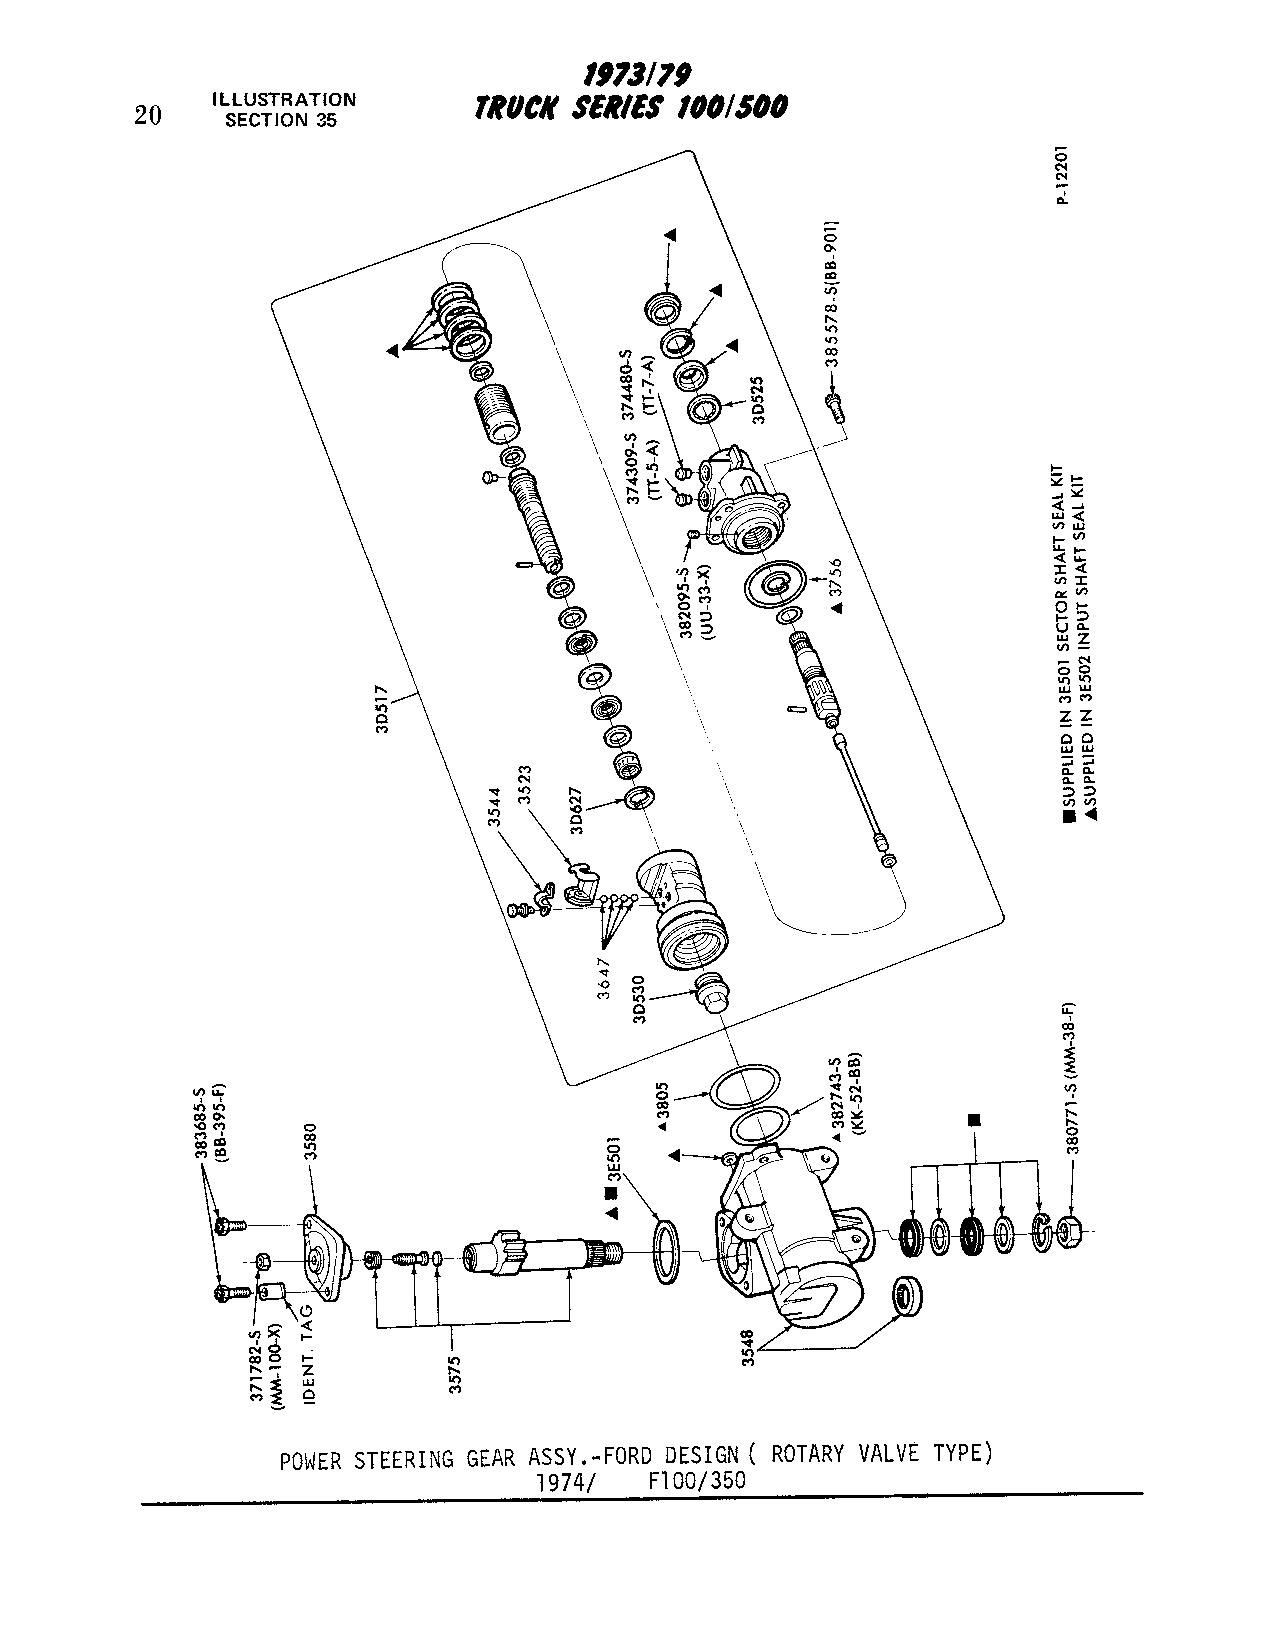 Power Steering Box Diagram F 250 Steering Box Rebuild ford Truck  Enthusiasts forums Of Power Steering